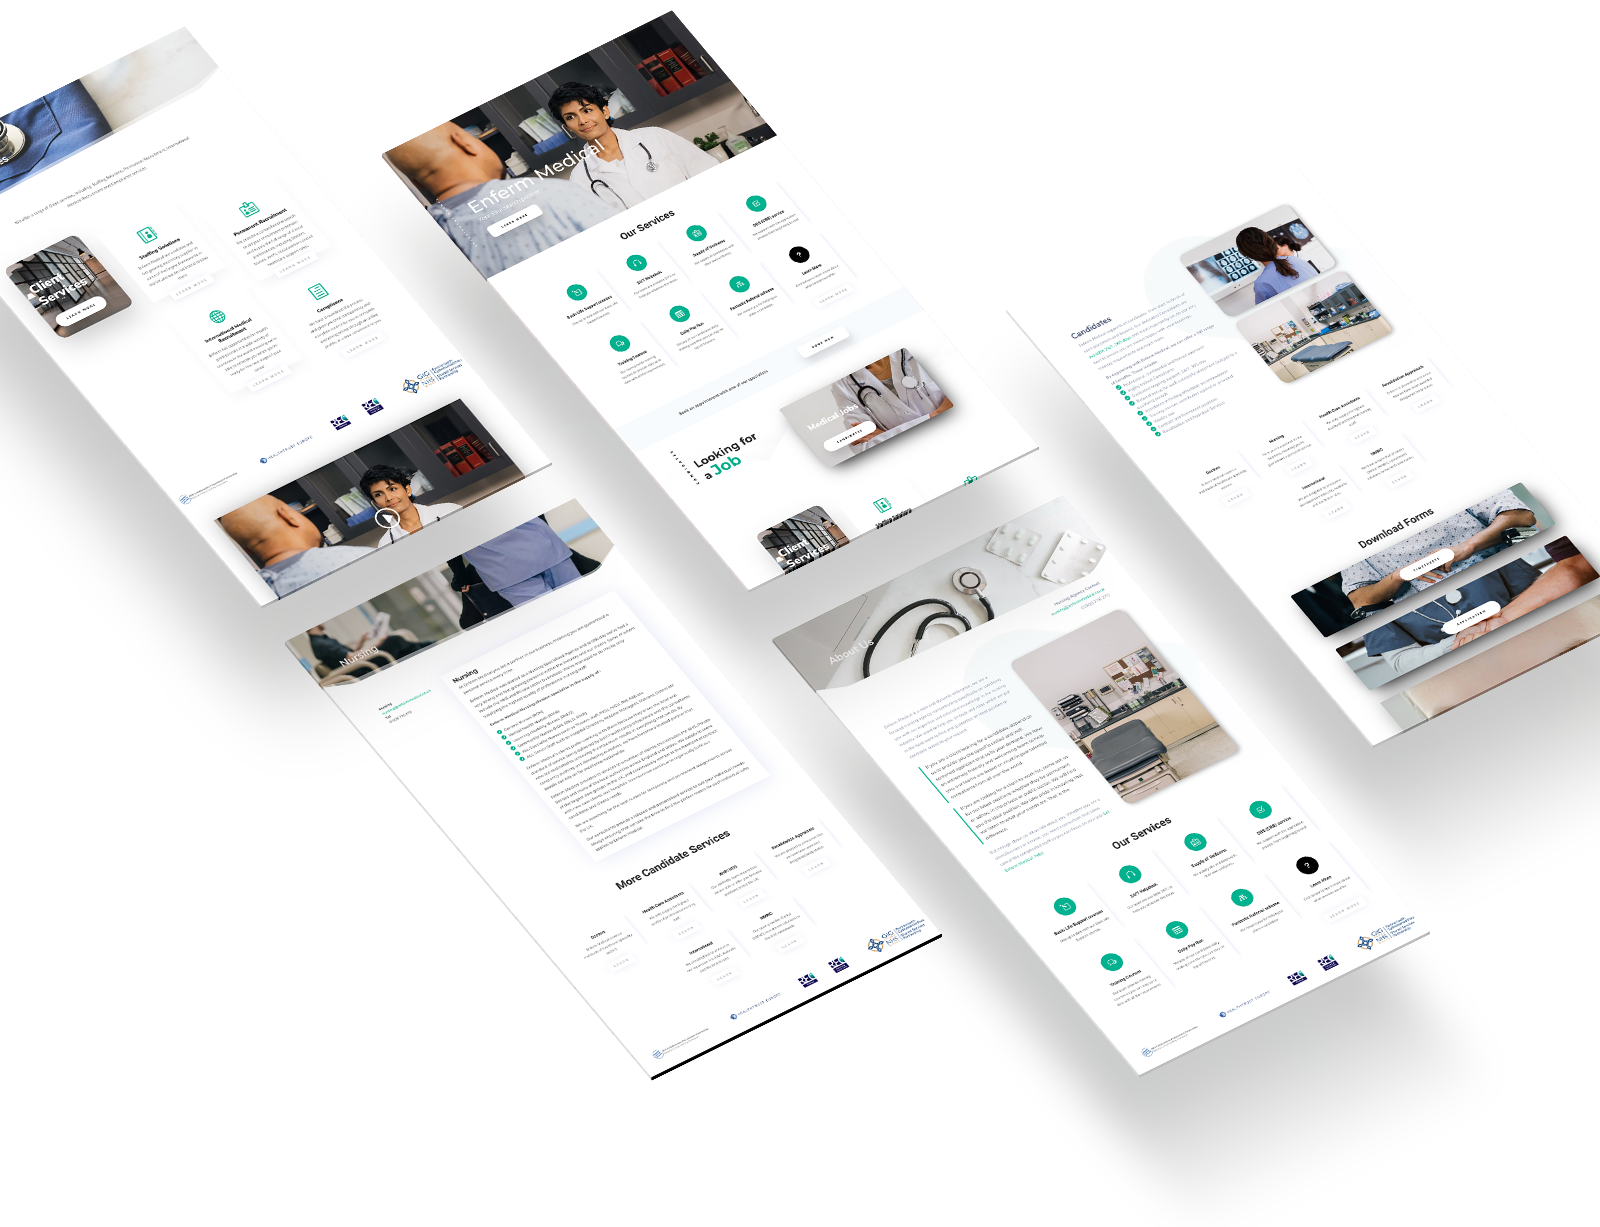 the atom lab Enferm Medical Website design screens